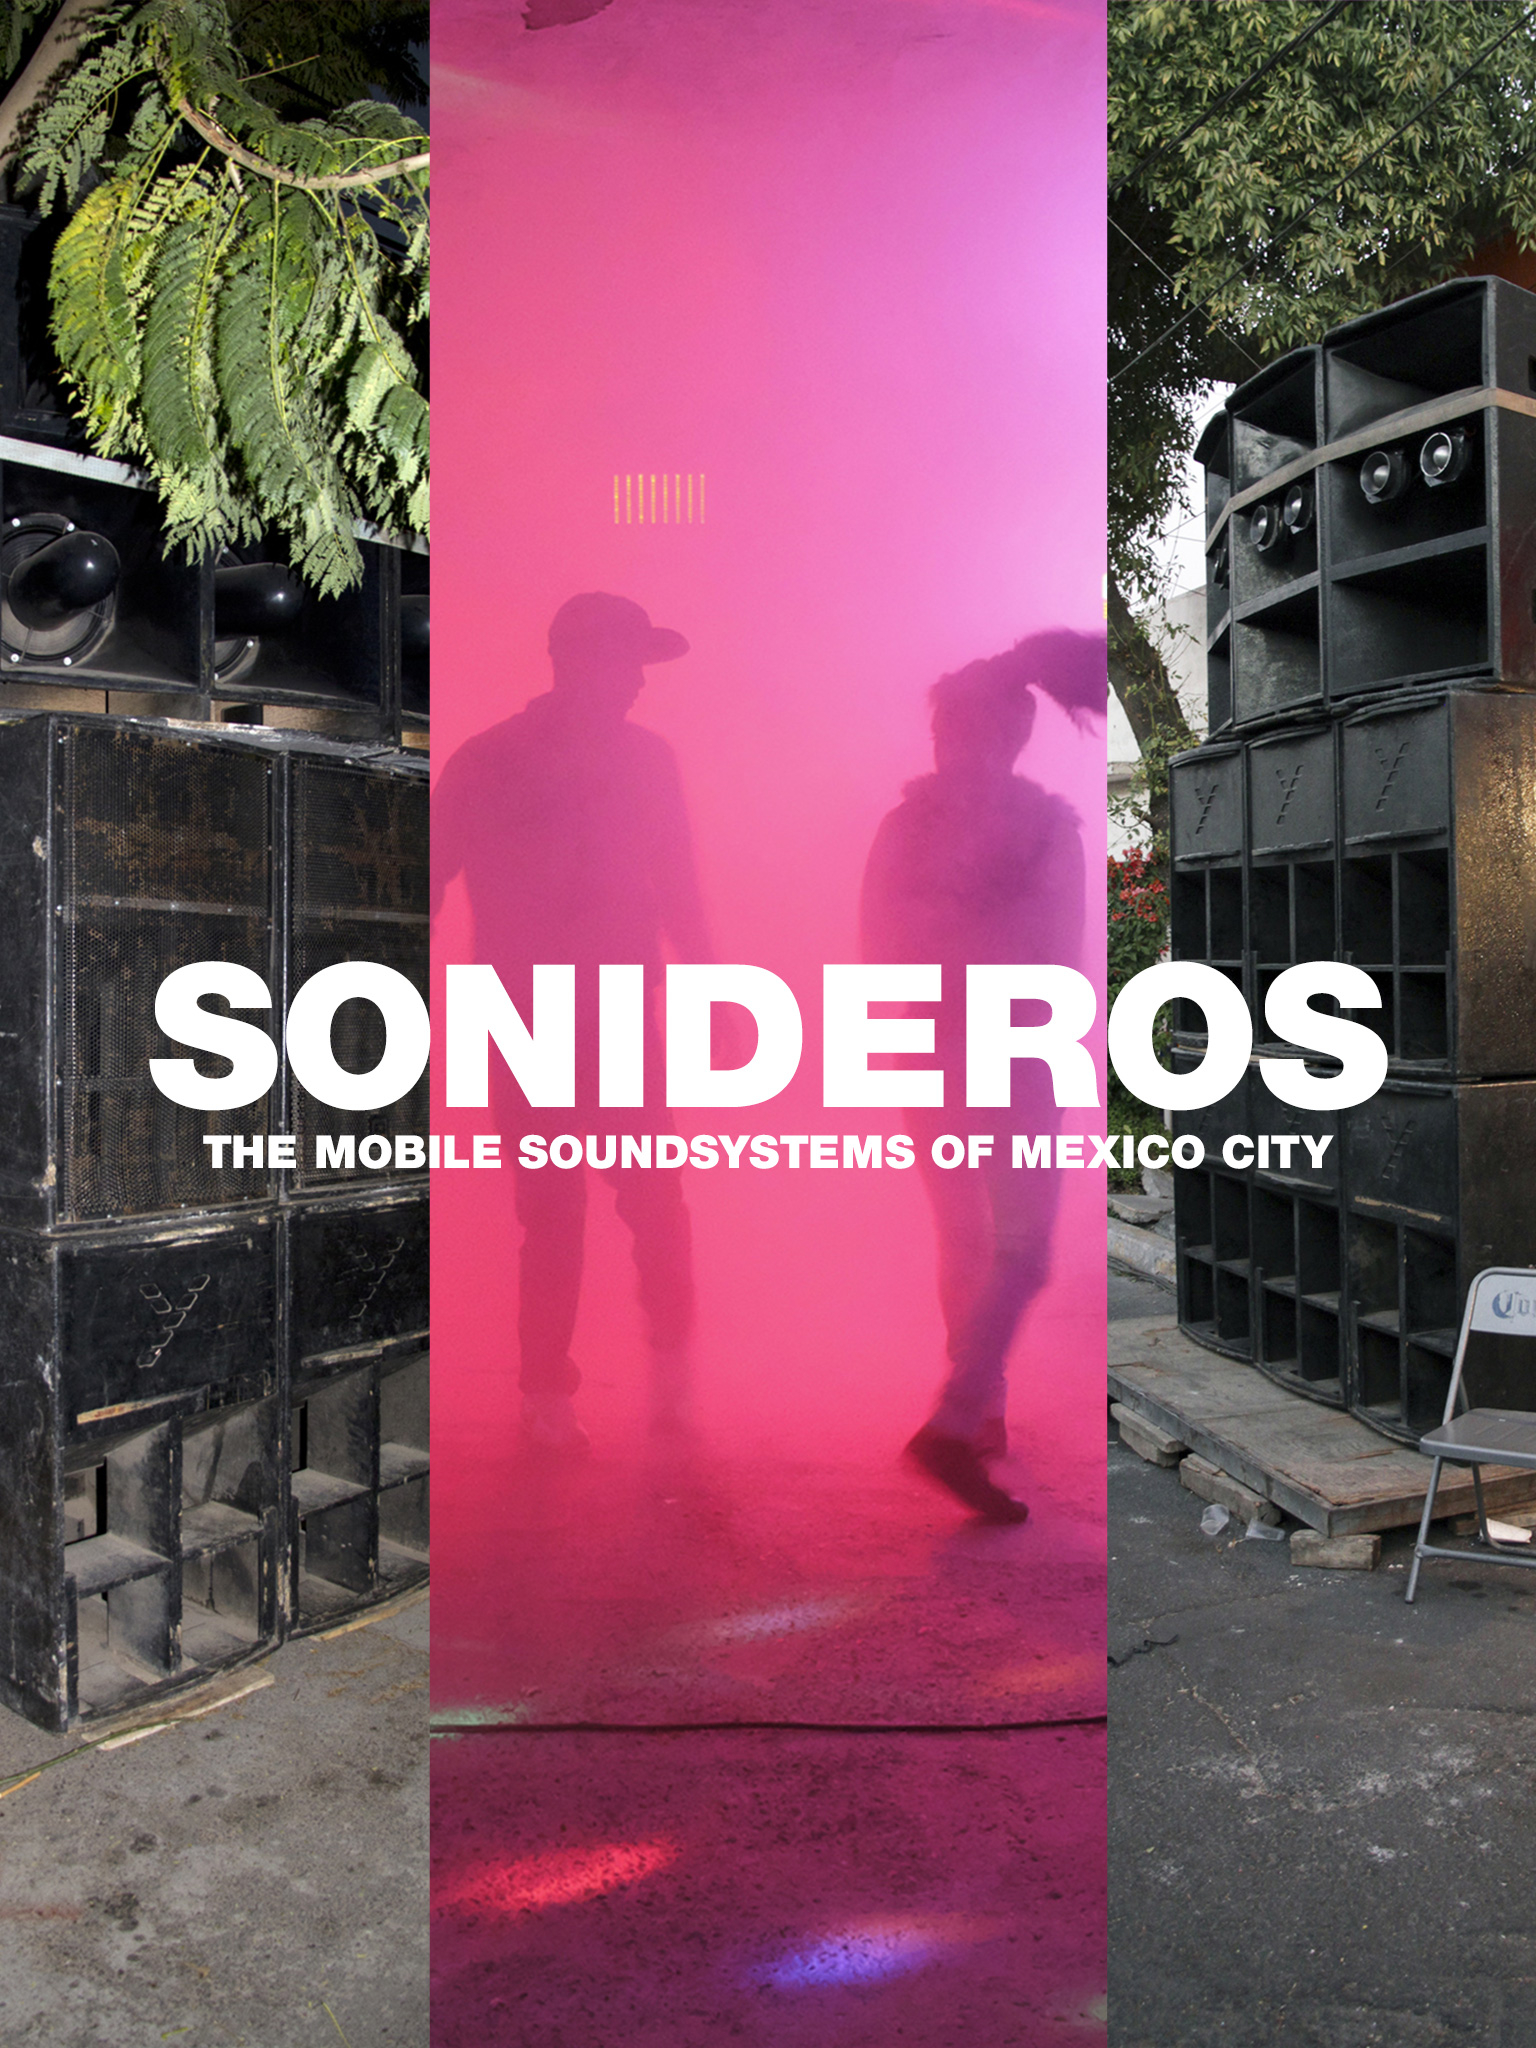 RA: Sonideros: The mobile soundsystems of Mexico City